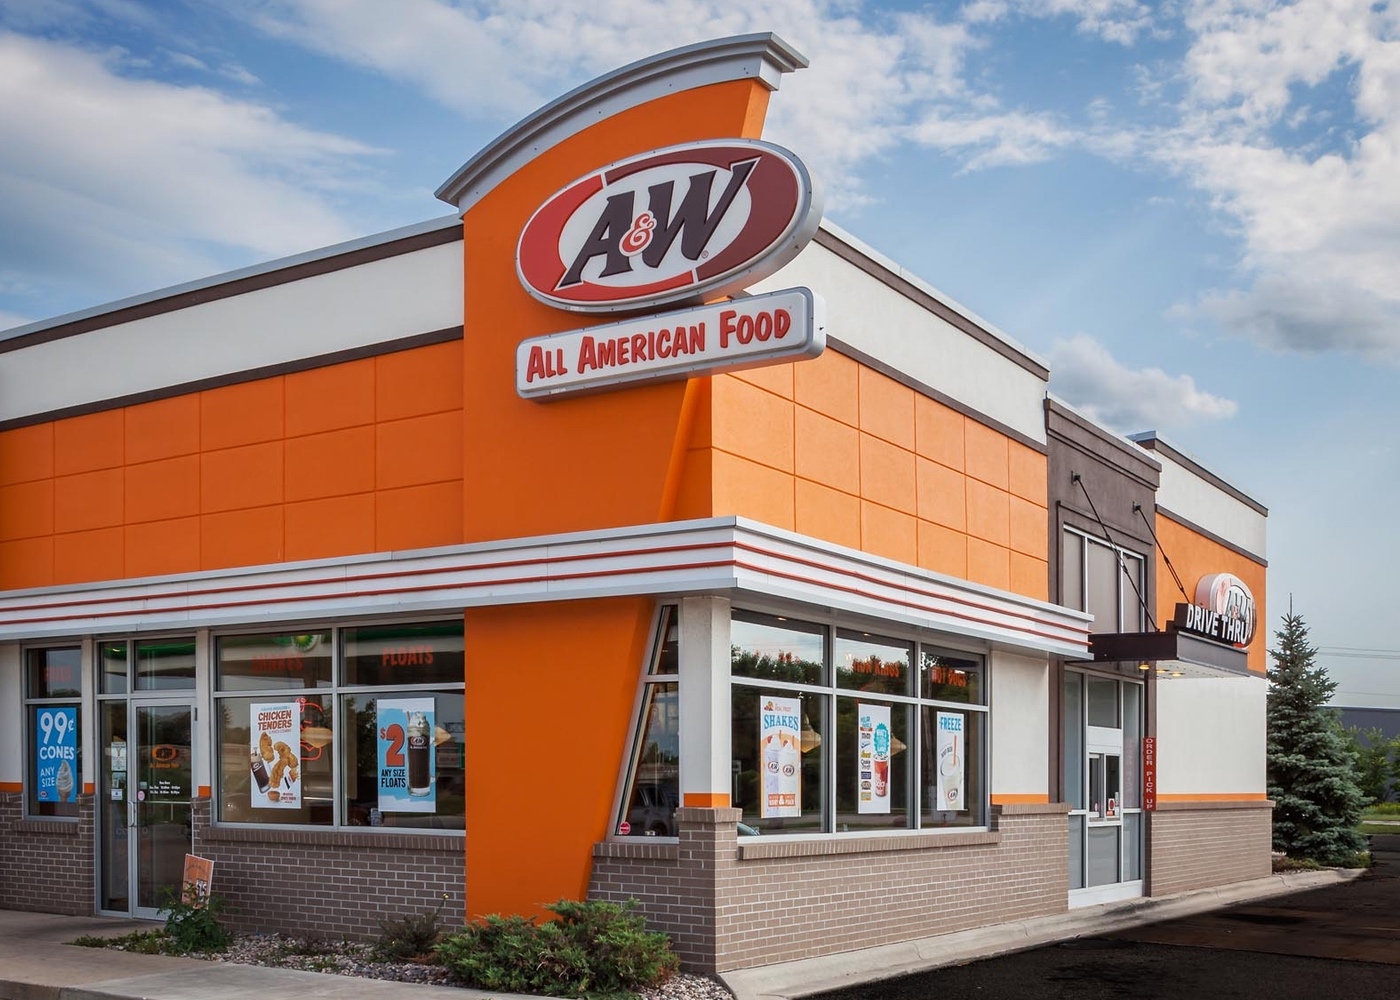 Exterior shot of an A&W restaurant in sunny weather